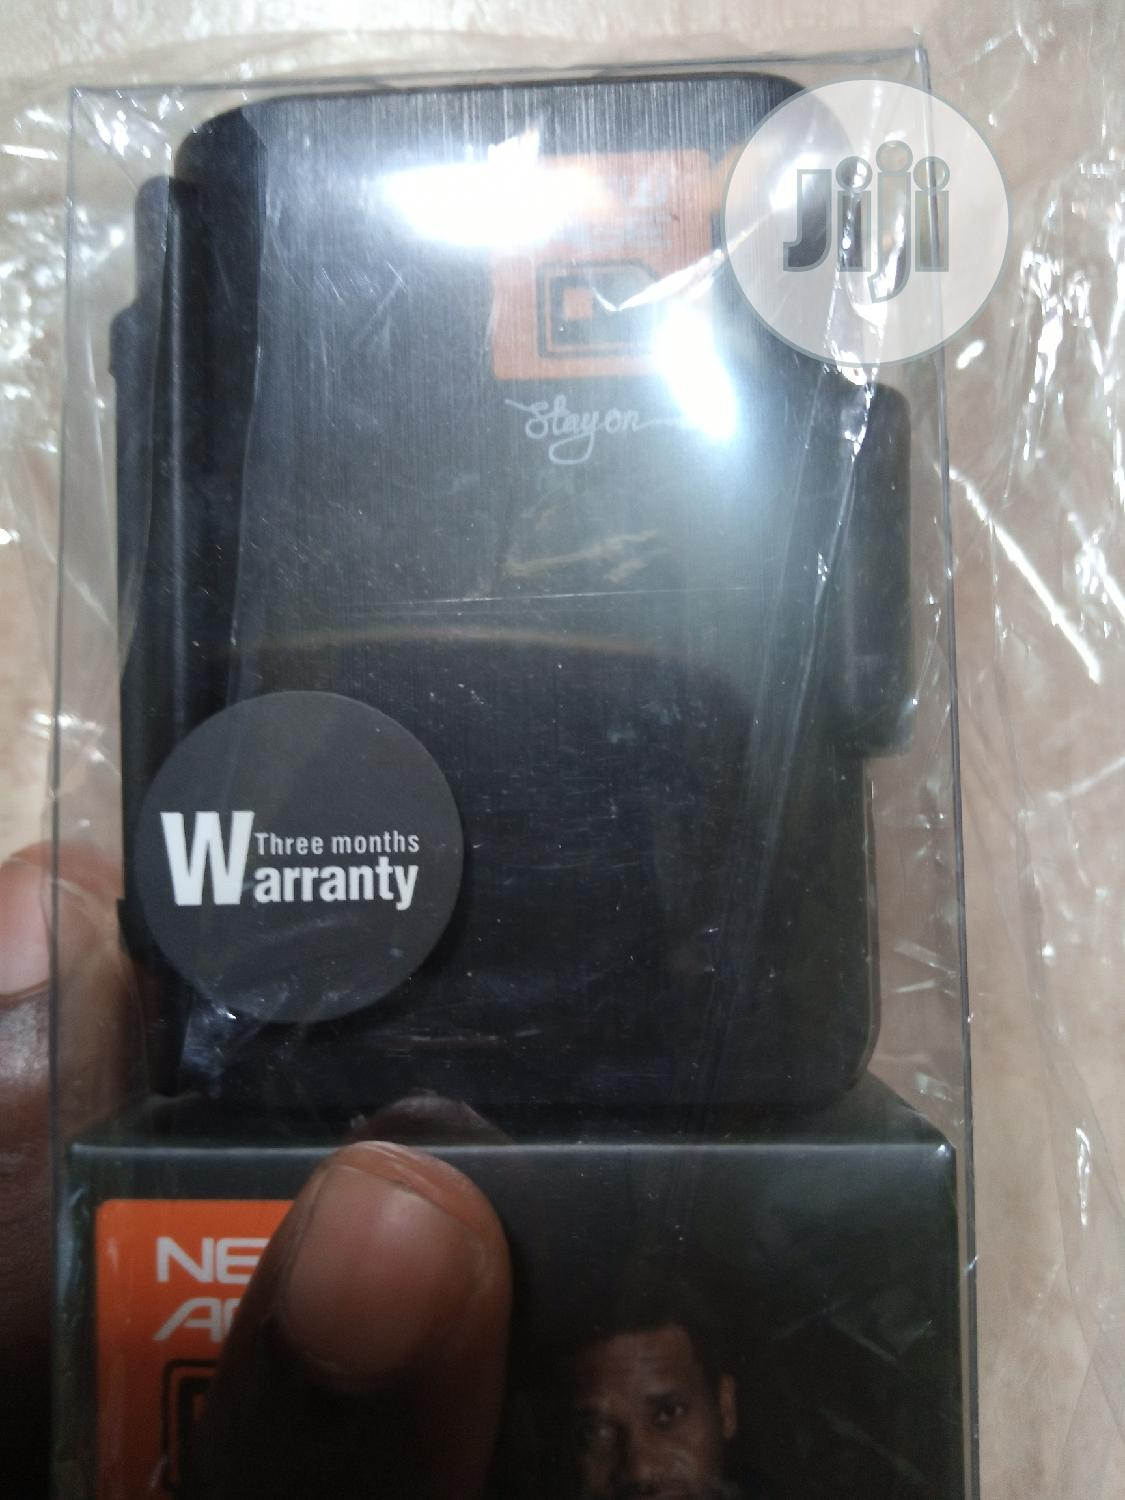 Original New Age 4400mah Power Bank   Accessories for Mobile Phones & Tablets for sale in Mushin, Lagos State, Nigeria